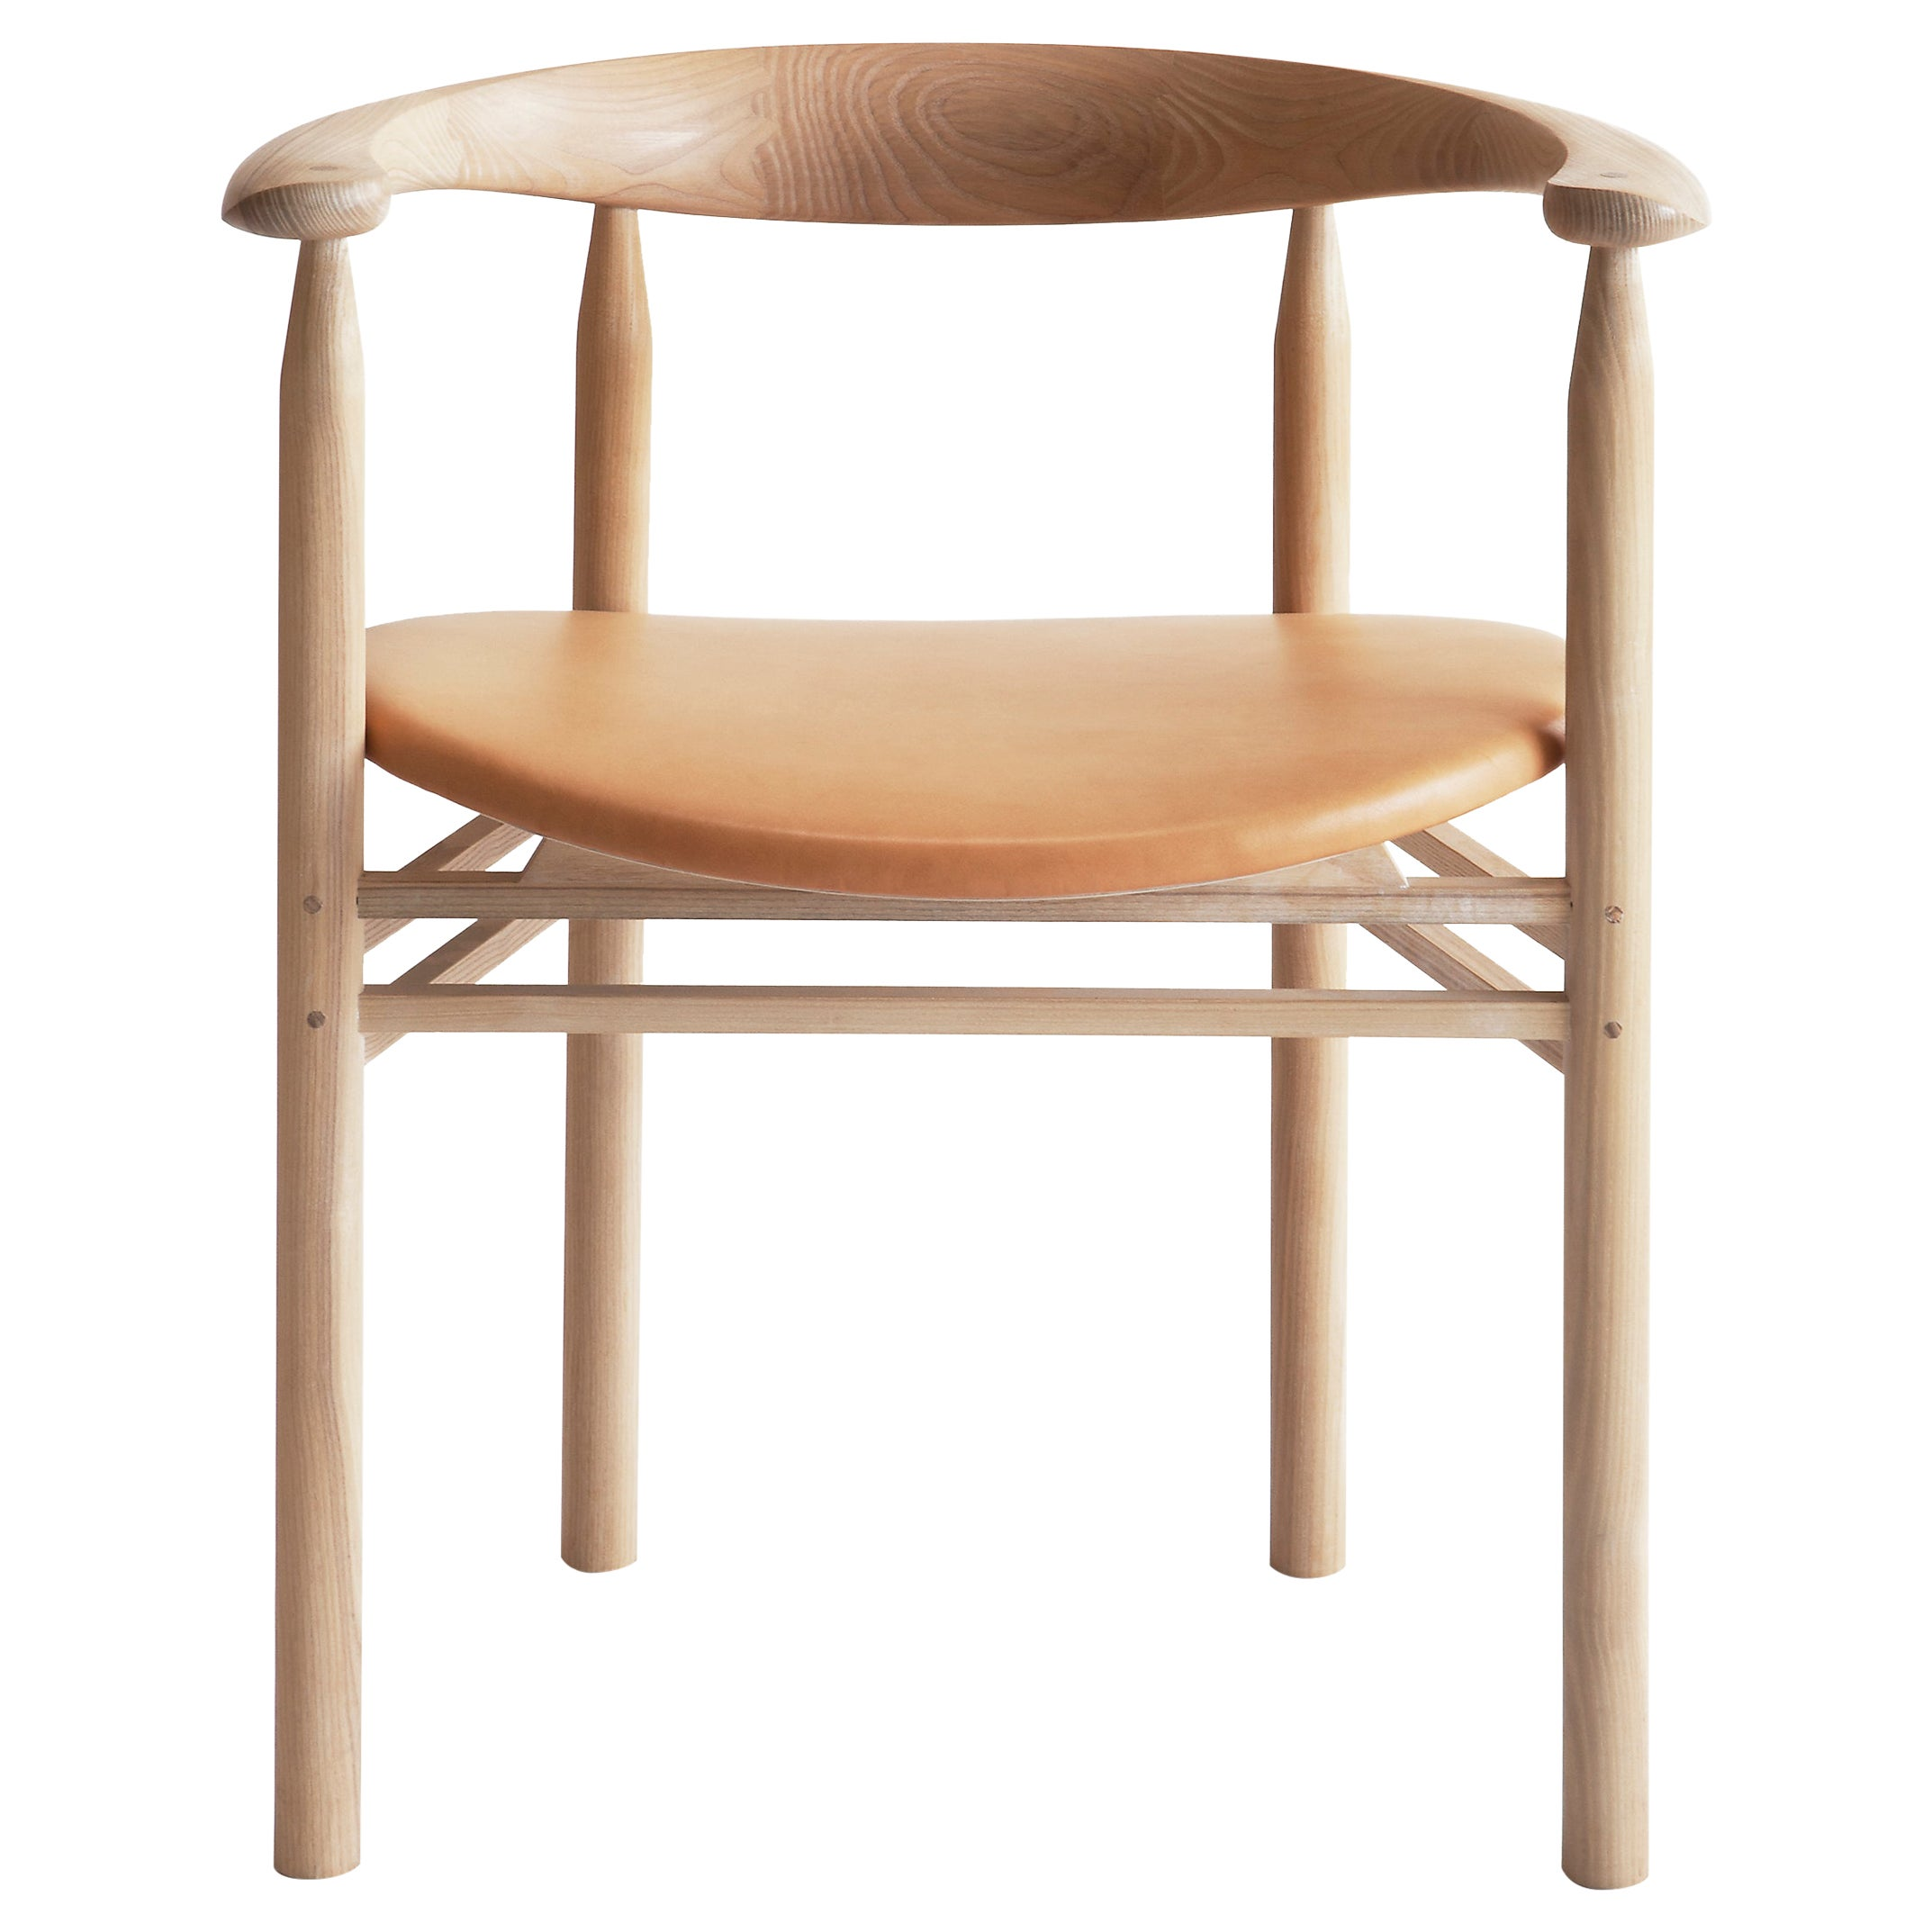 Linea RMT6 Armrest Chair in Ash by Rudi Merz